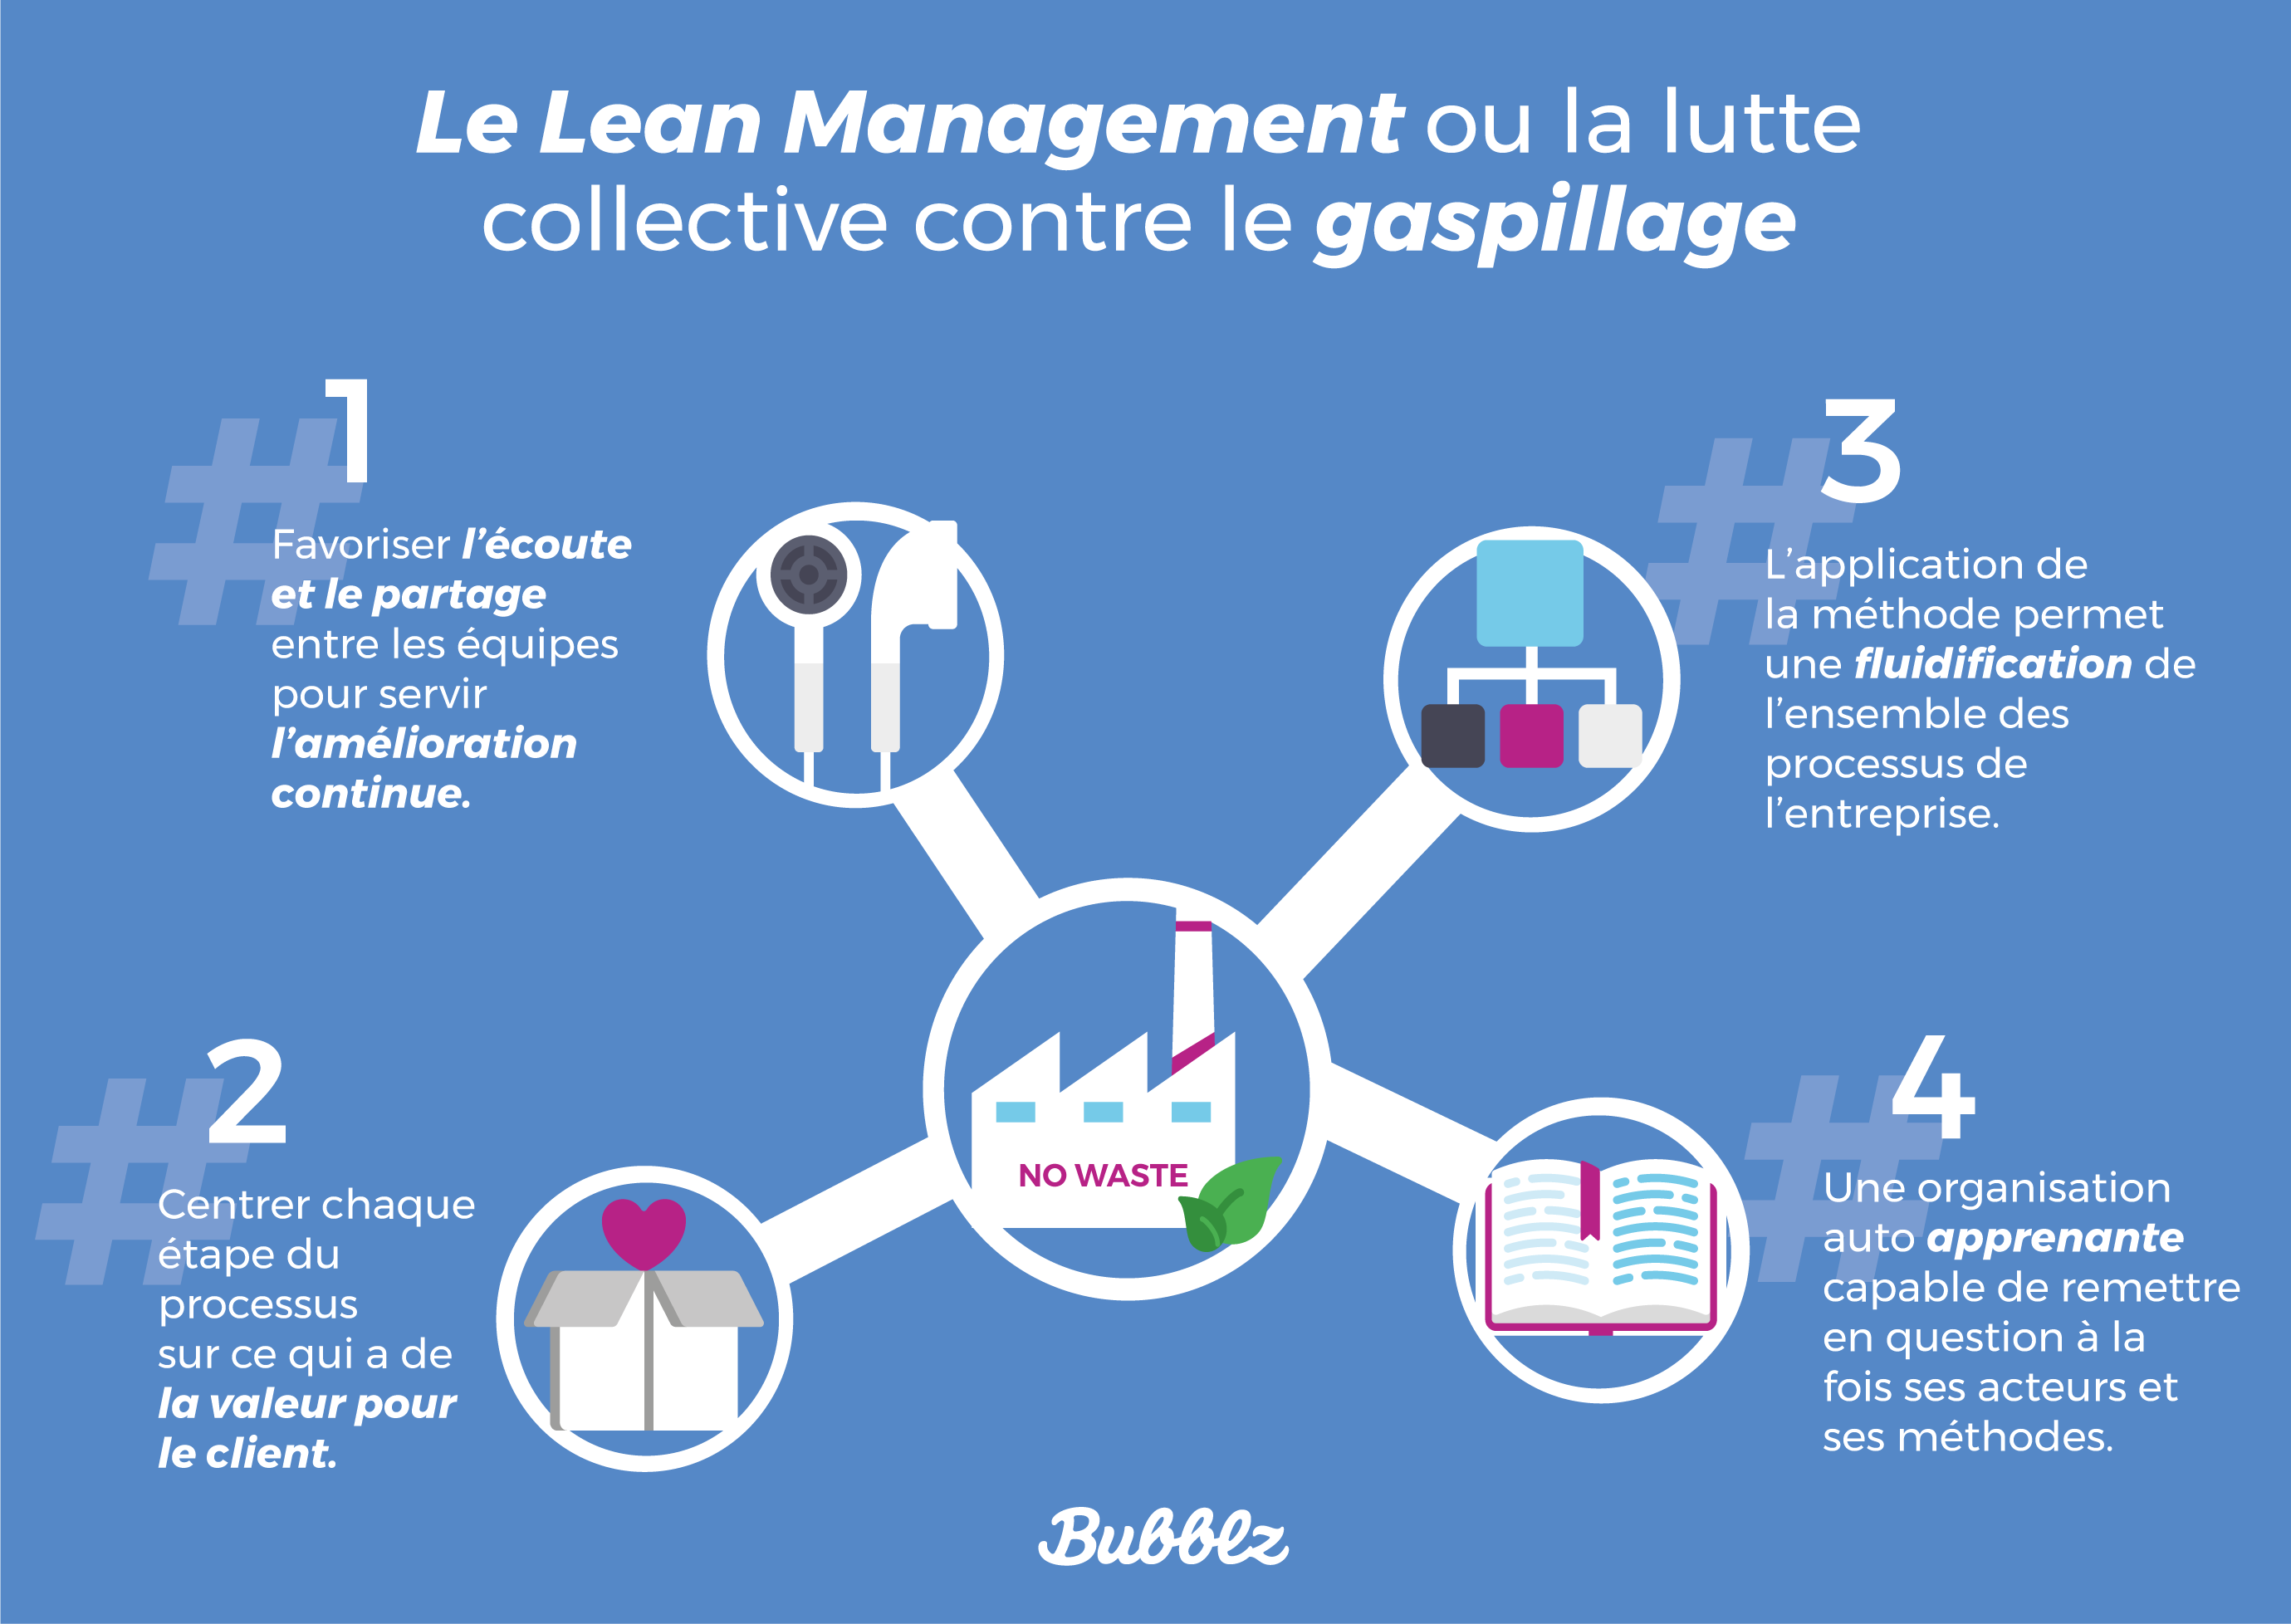 Le Lean Management - Bubblz